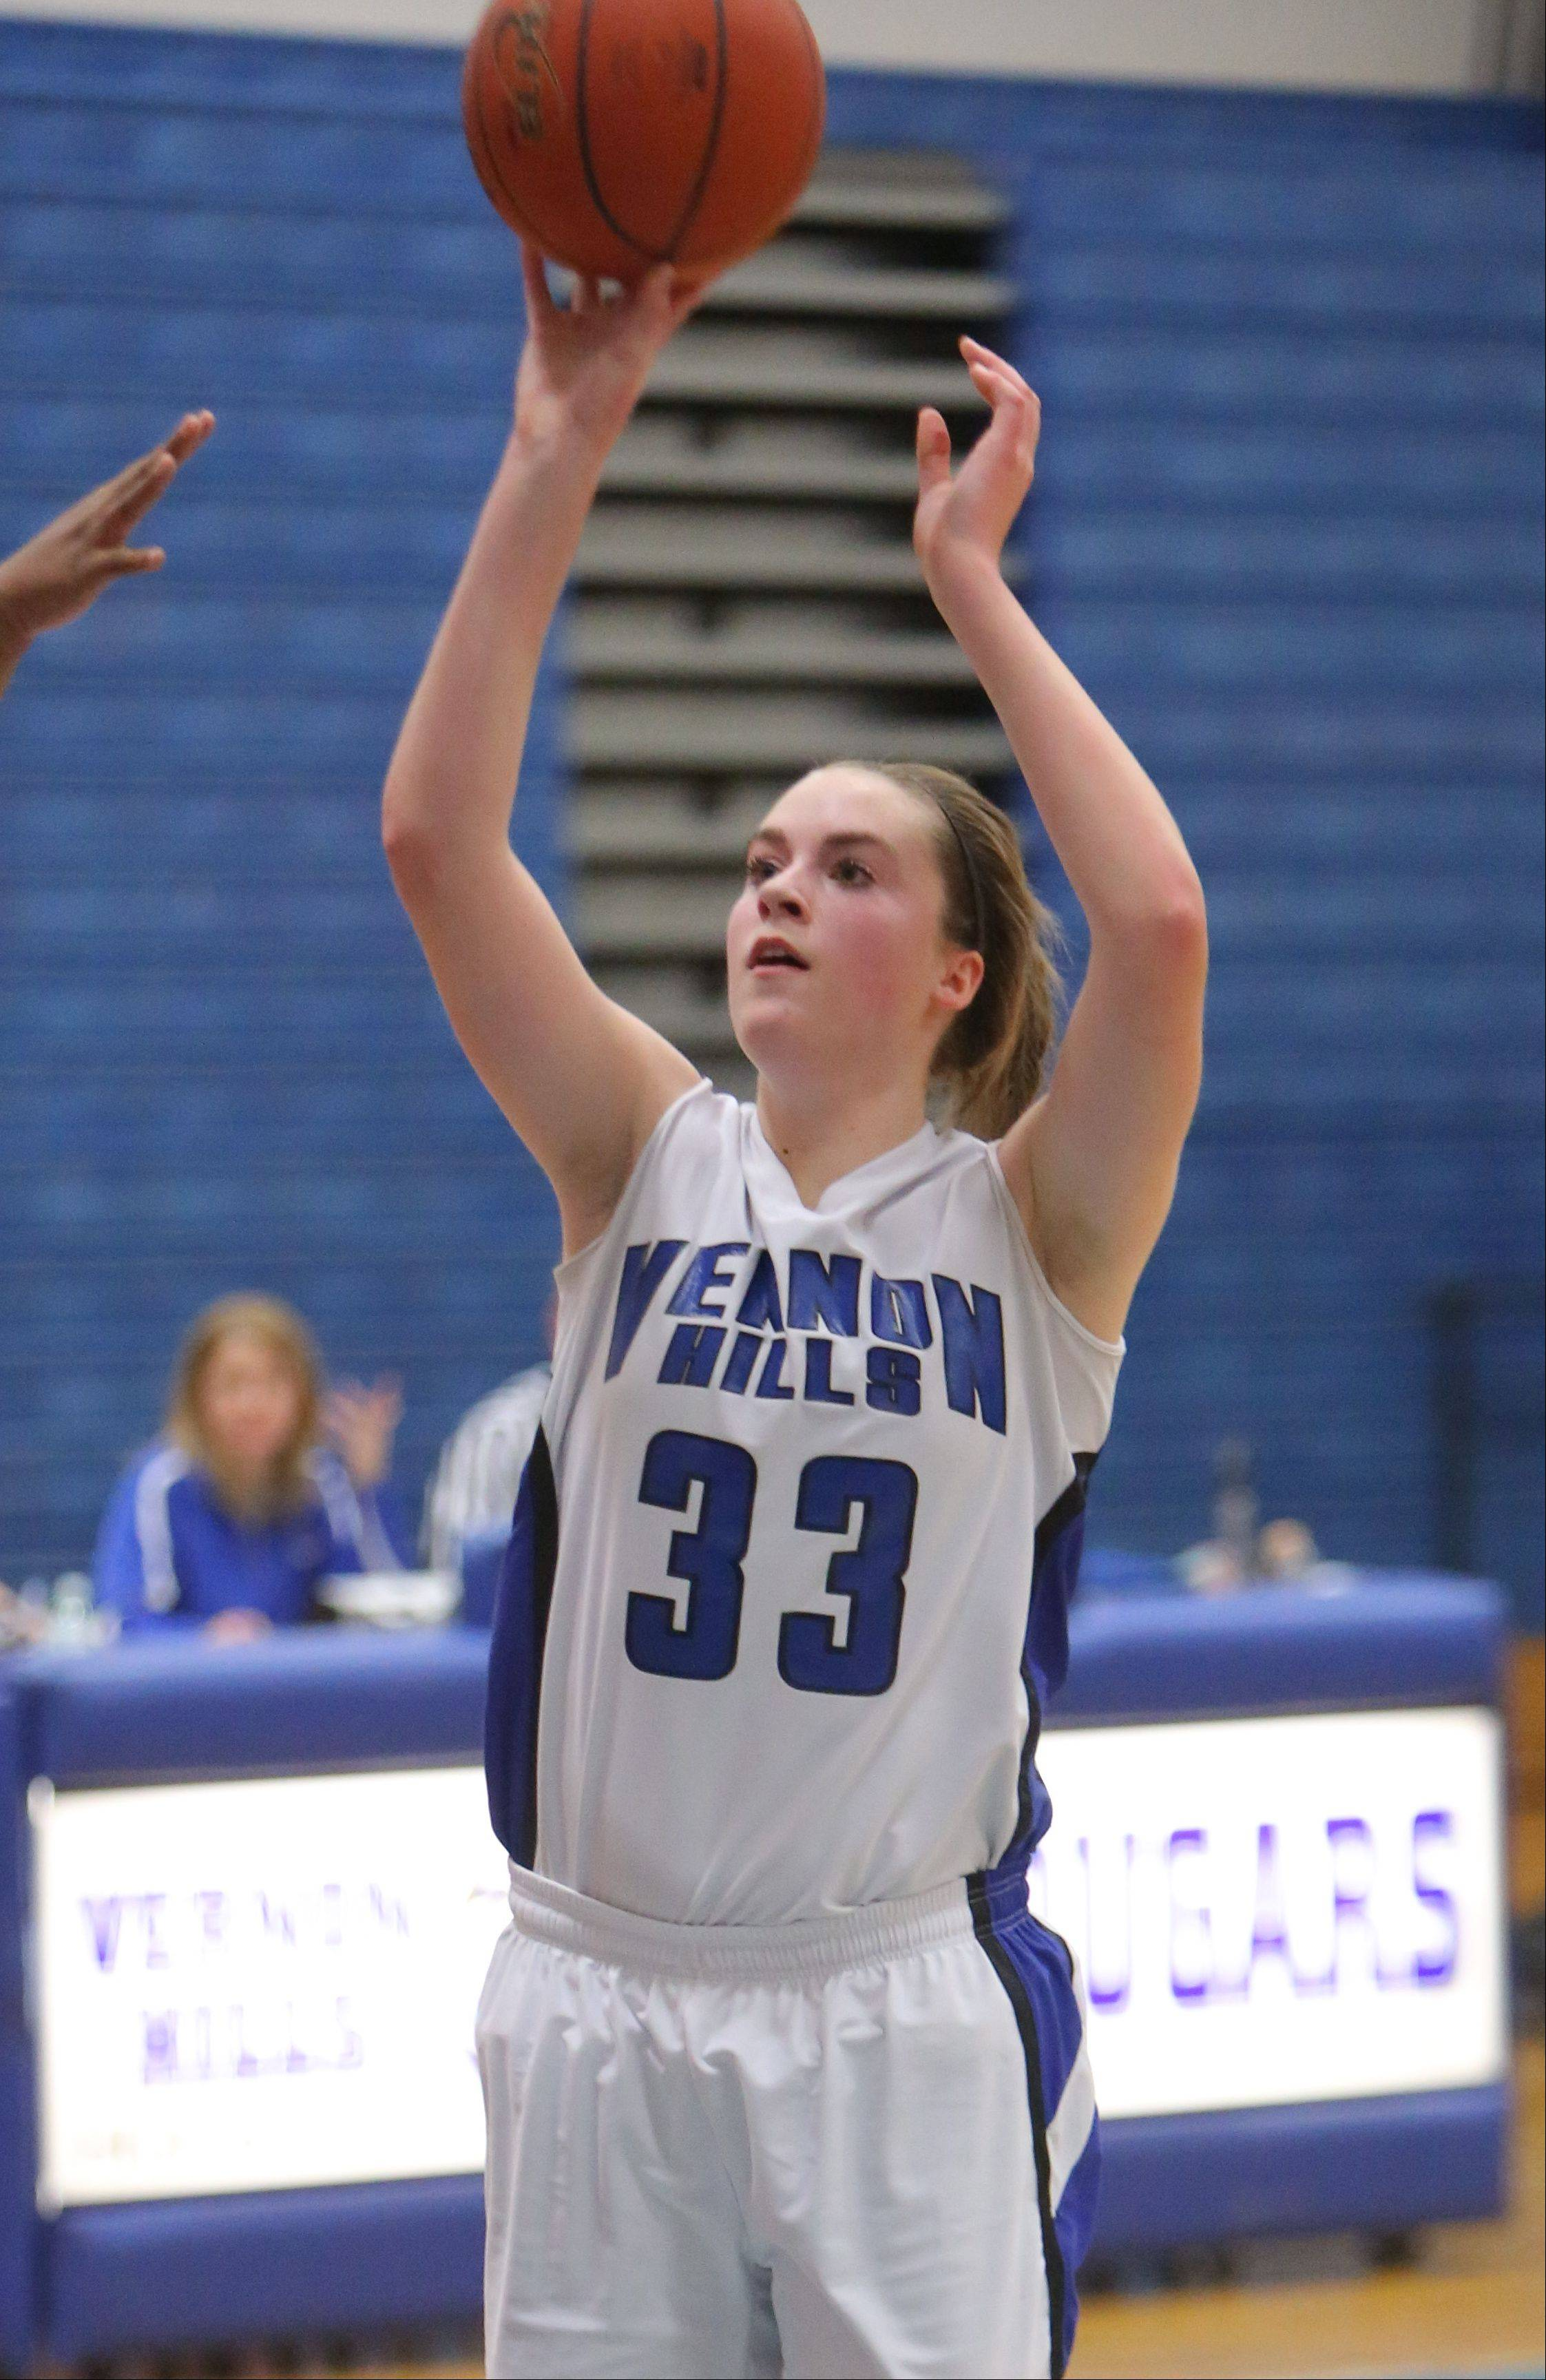 Images from the North Chicago at Vernon Hills girls basketball game on Wednesday, January 22.